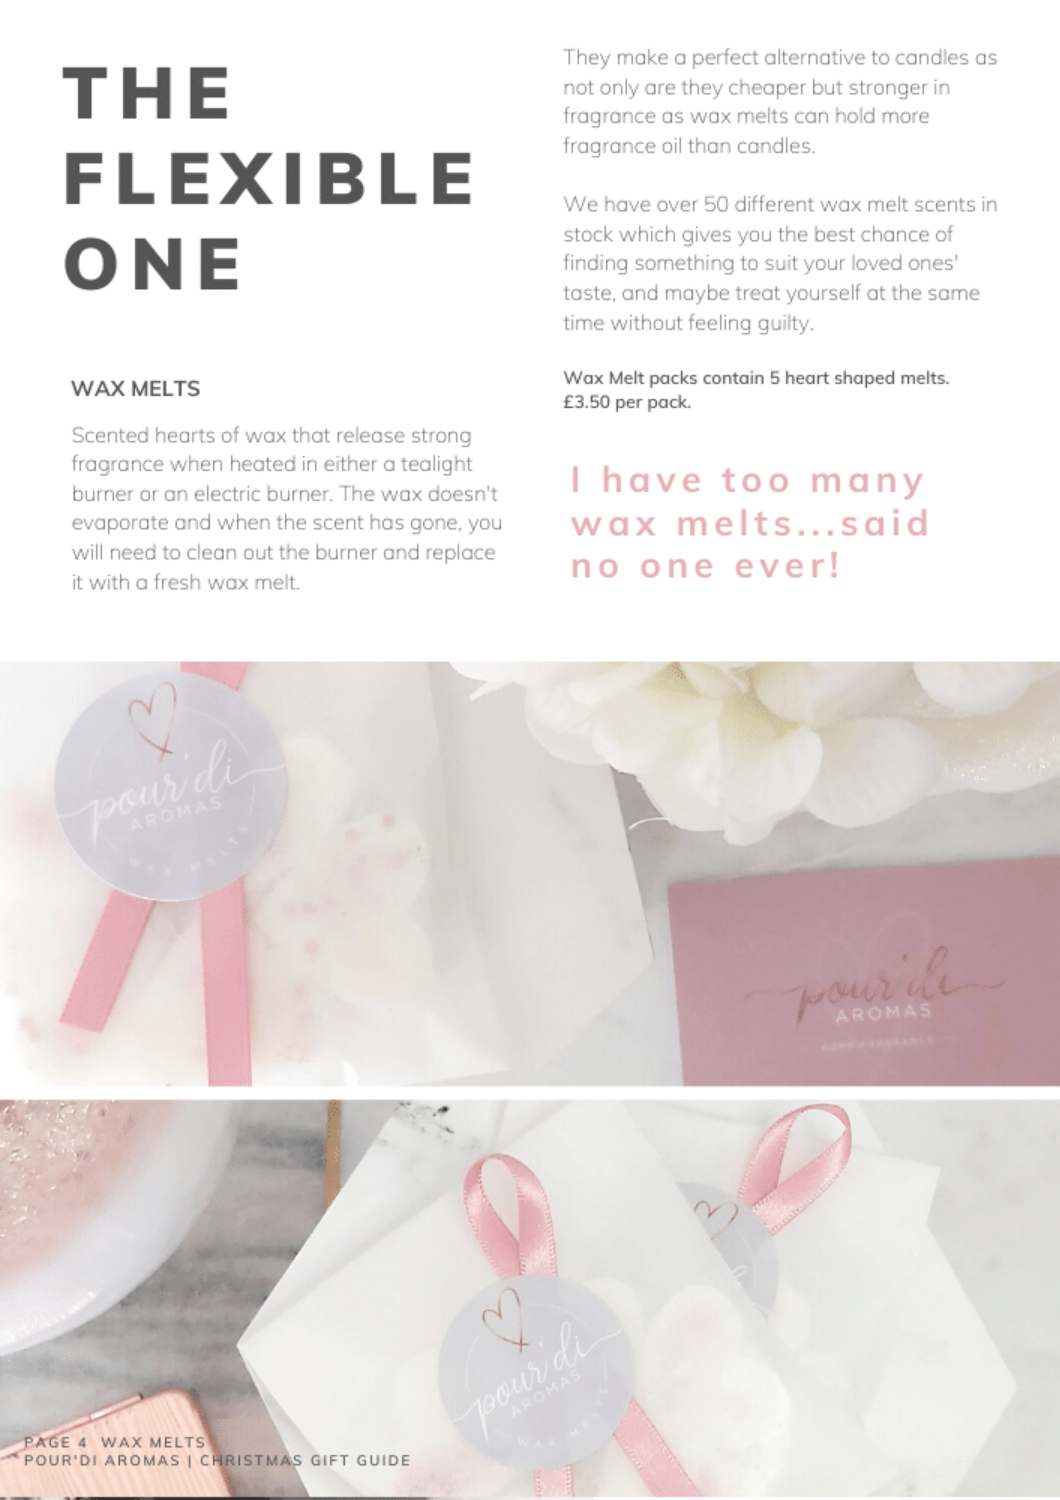 The Flexible One. Wax Melts.